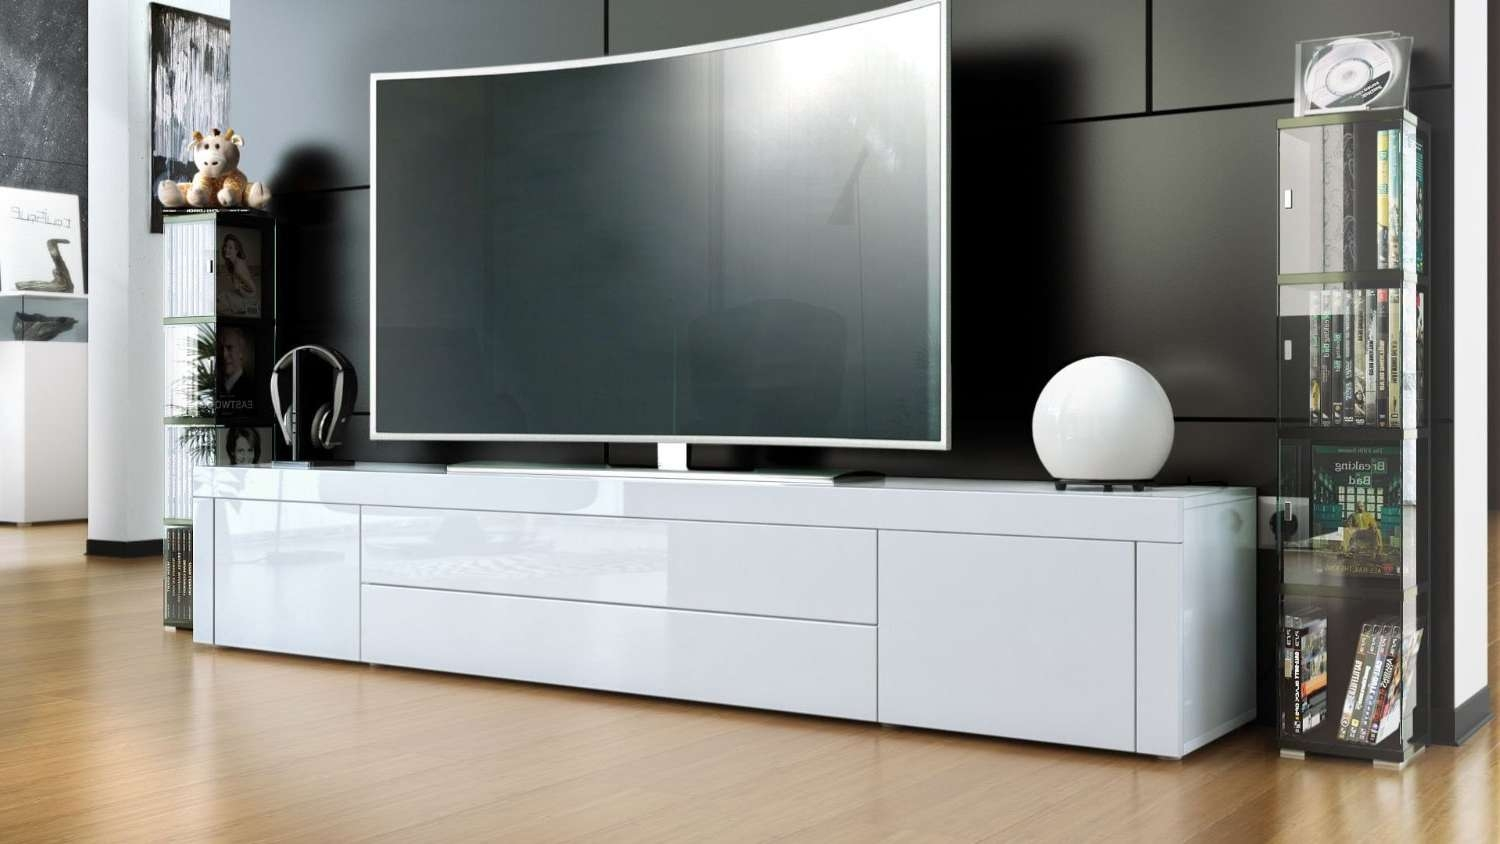 Best Tv Stands White Gloss 49 About Remodel House Interiors With Inside White High Gloss Tv Stands Unit Cabinet (View 13 of 15)